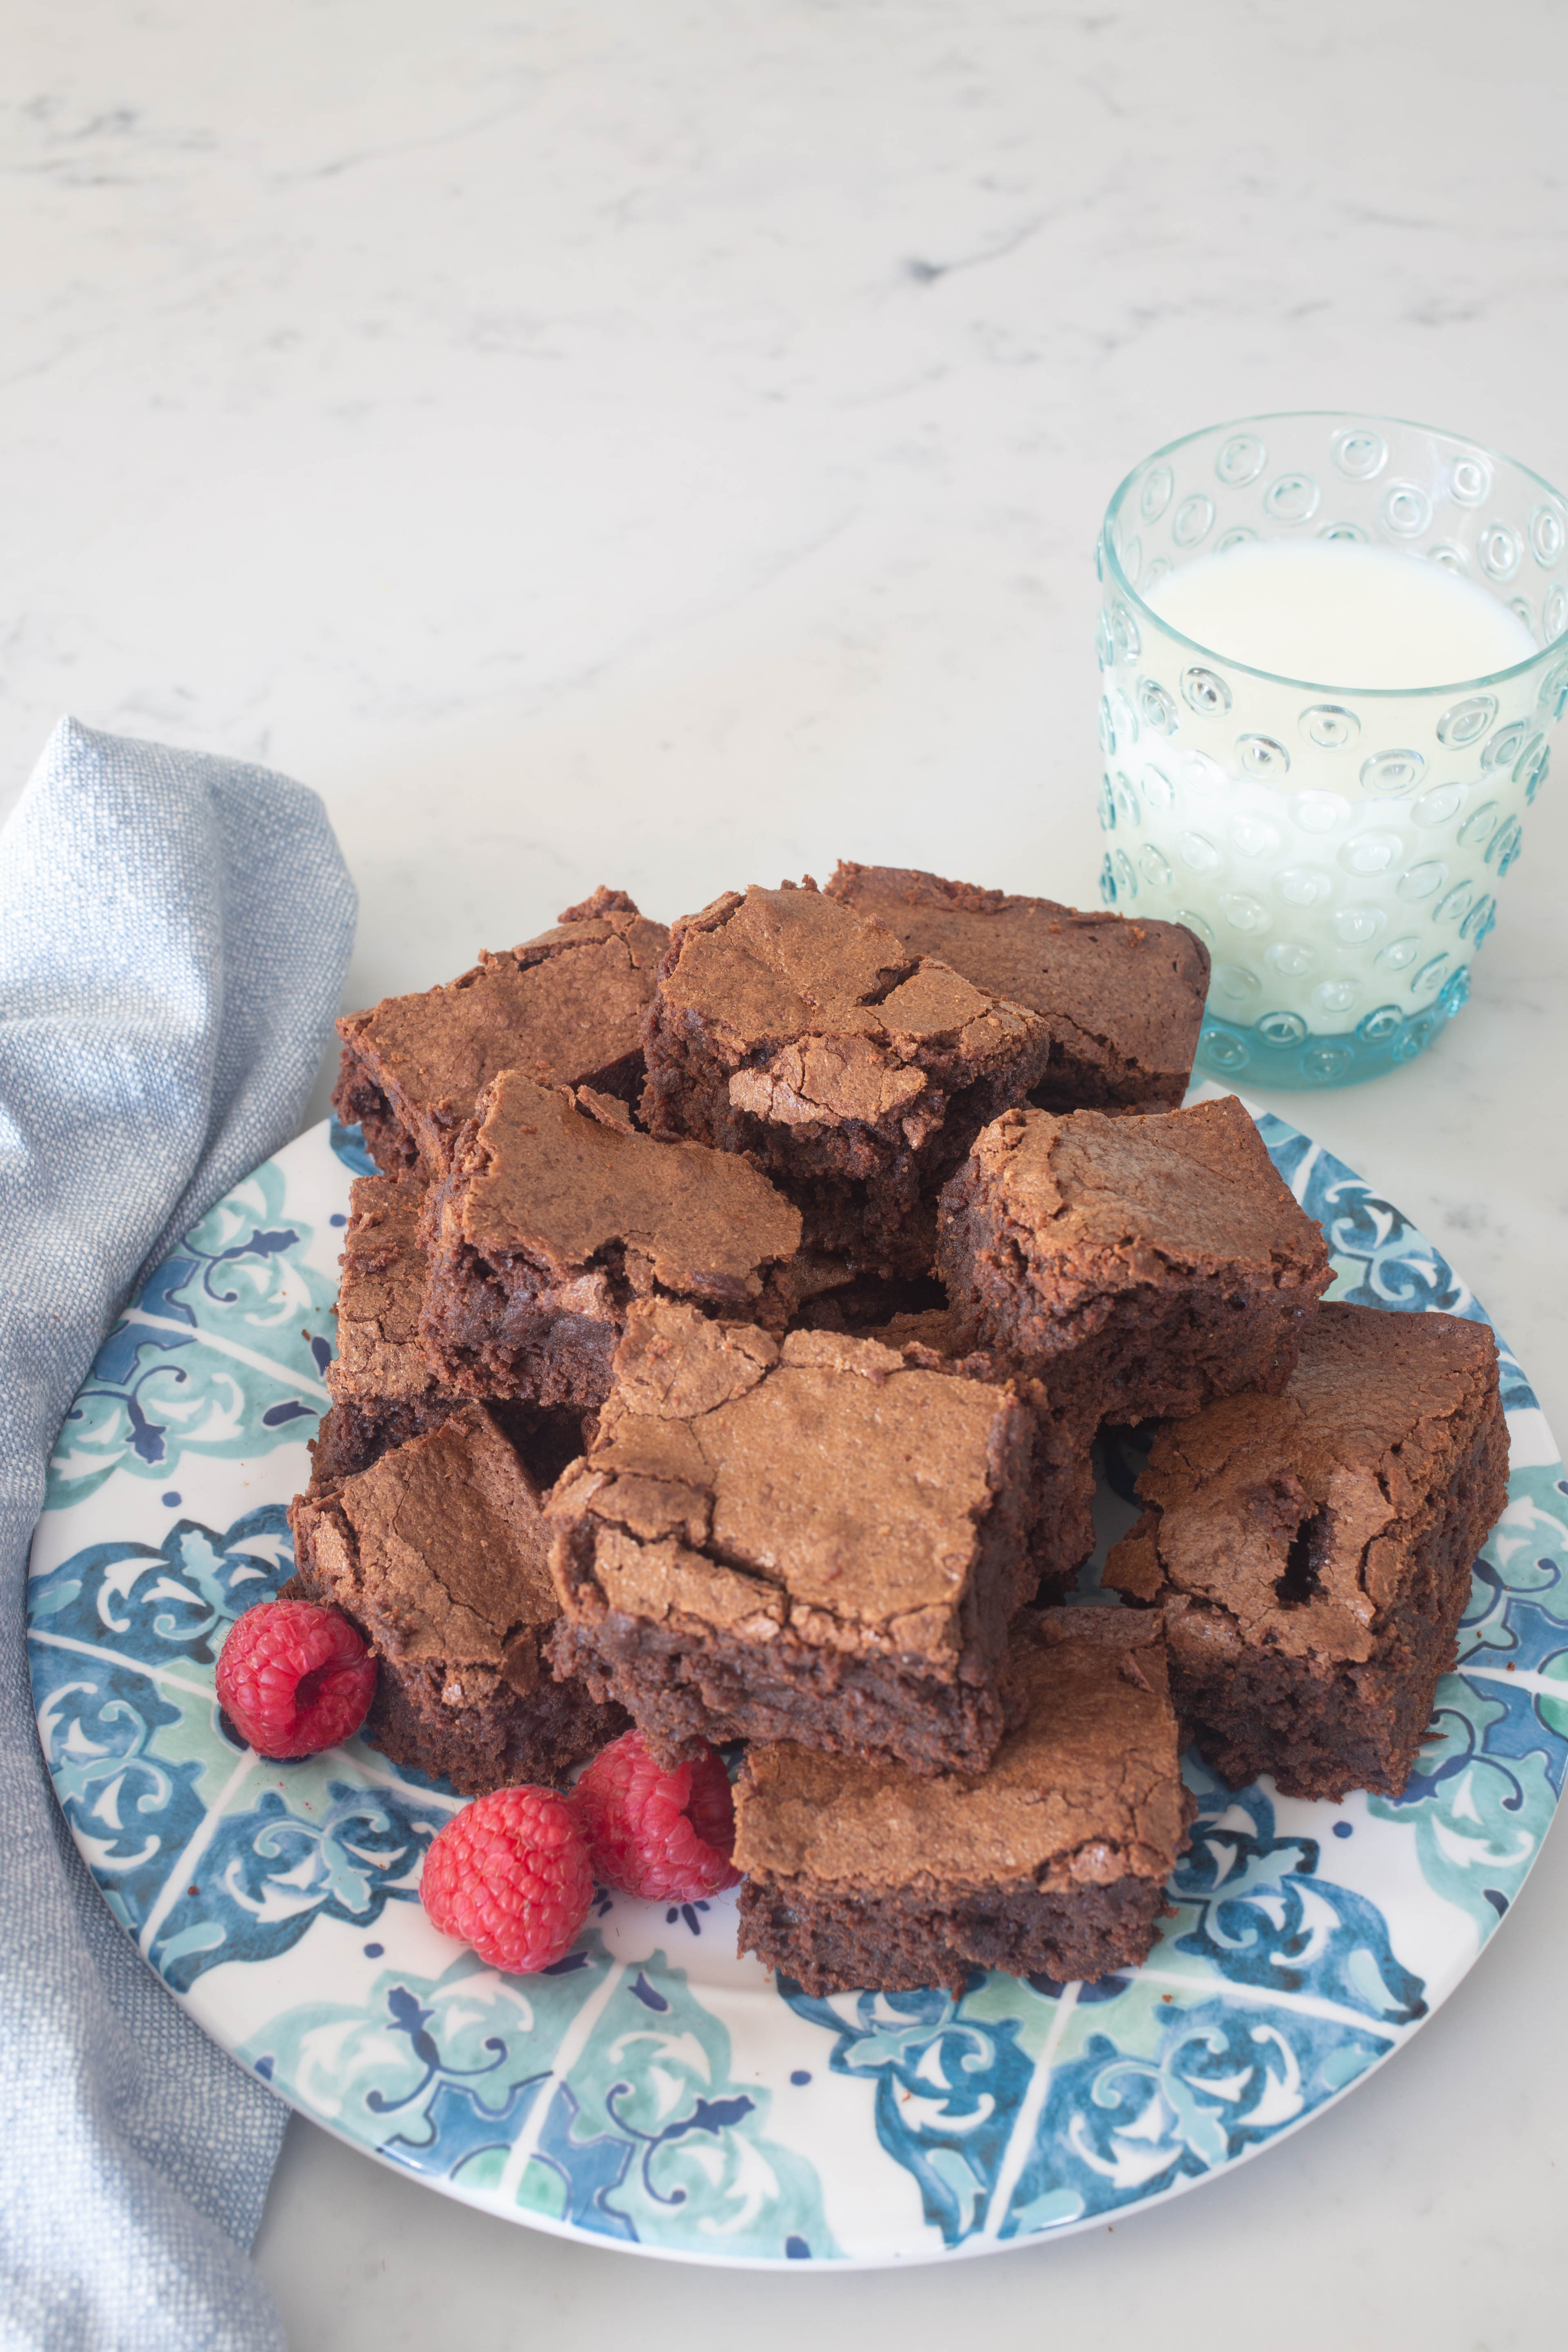 Easy Brownies from Scratch - Best Brownies from Scratch - How to Make Brownies for Beginners - Brownie Recipe with Cocoa Powder - Chocolate Chip Brownies - Homemade Brownies from Scratch - How to Make Brownies from Scratch - Disgustingly Rich Brownies